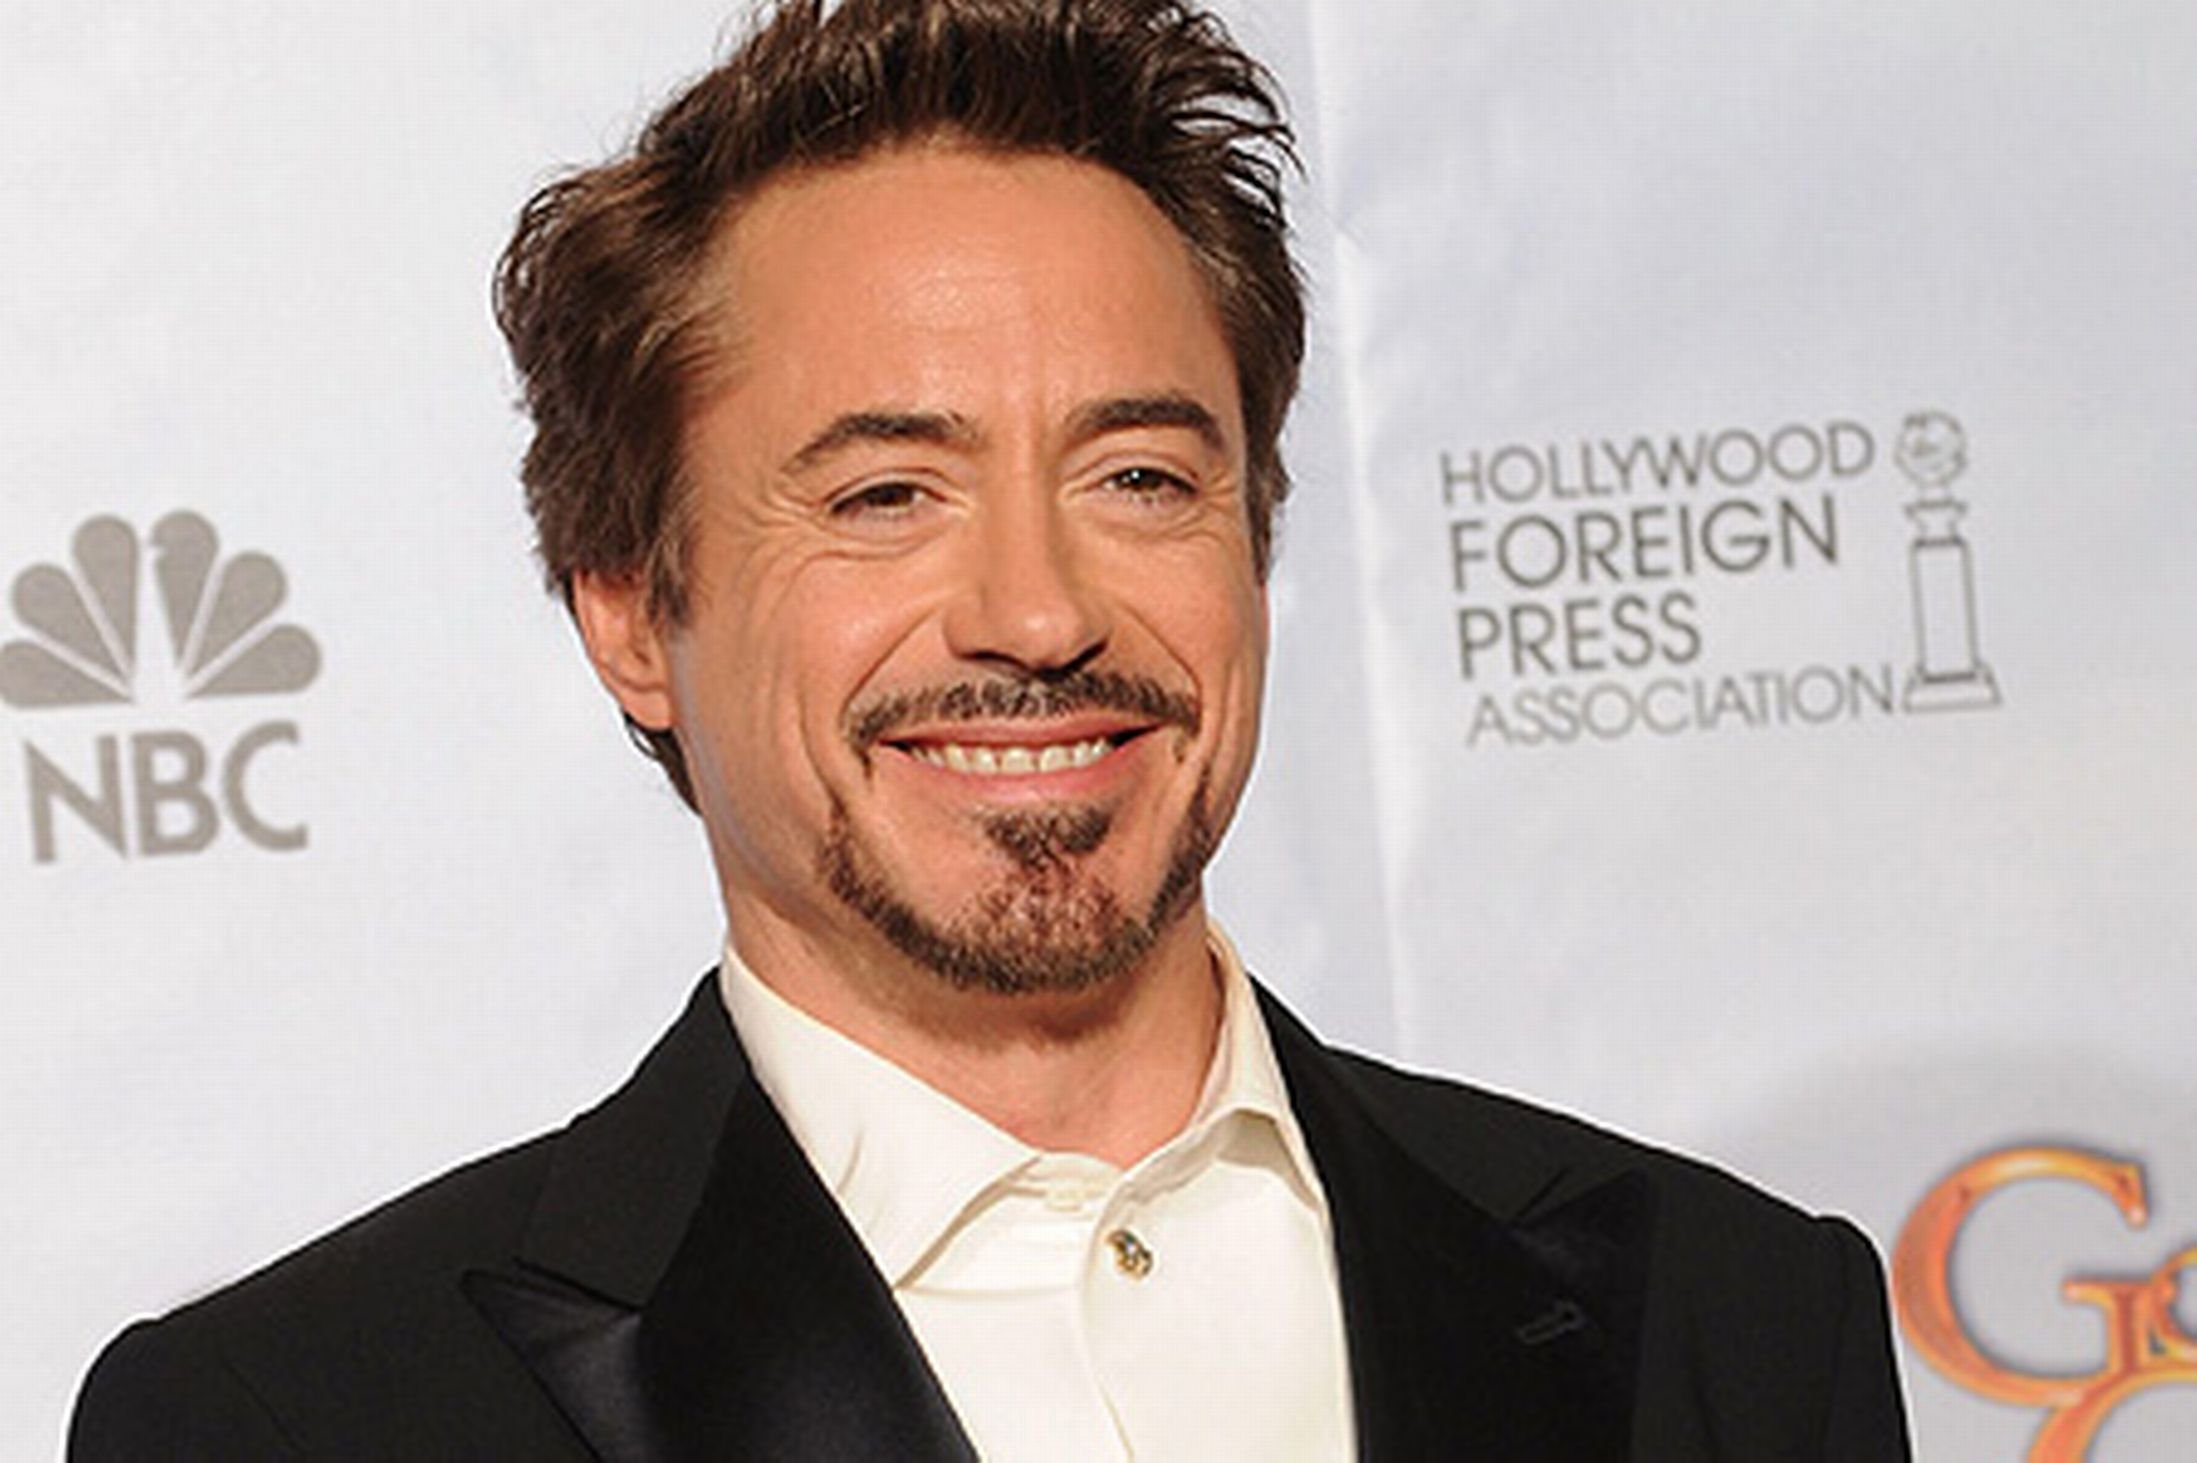 Robert Downey, Jr. Robert Downey